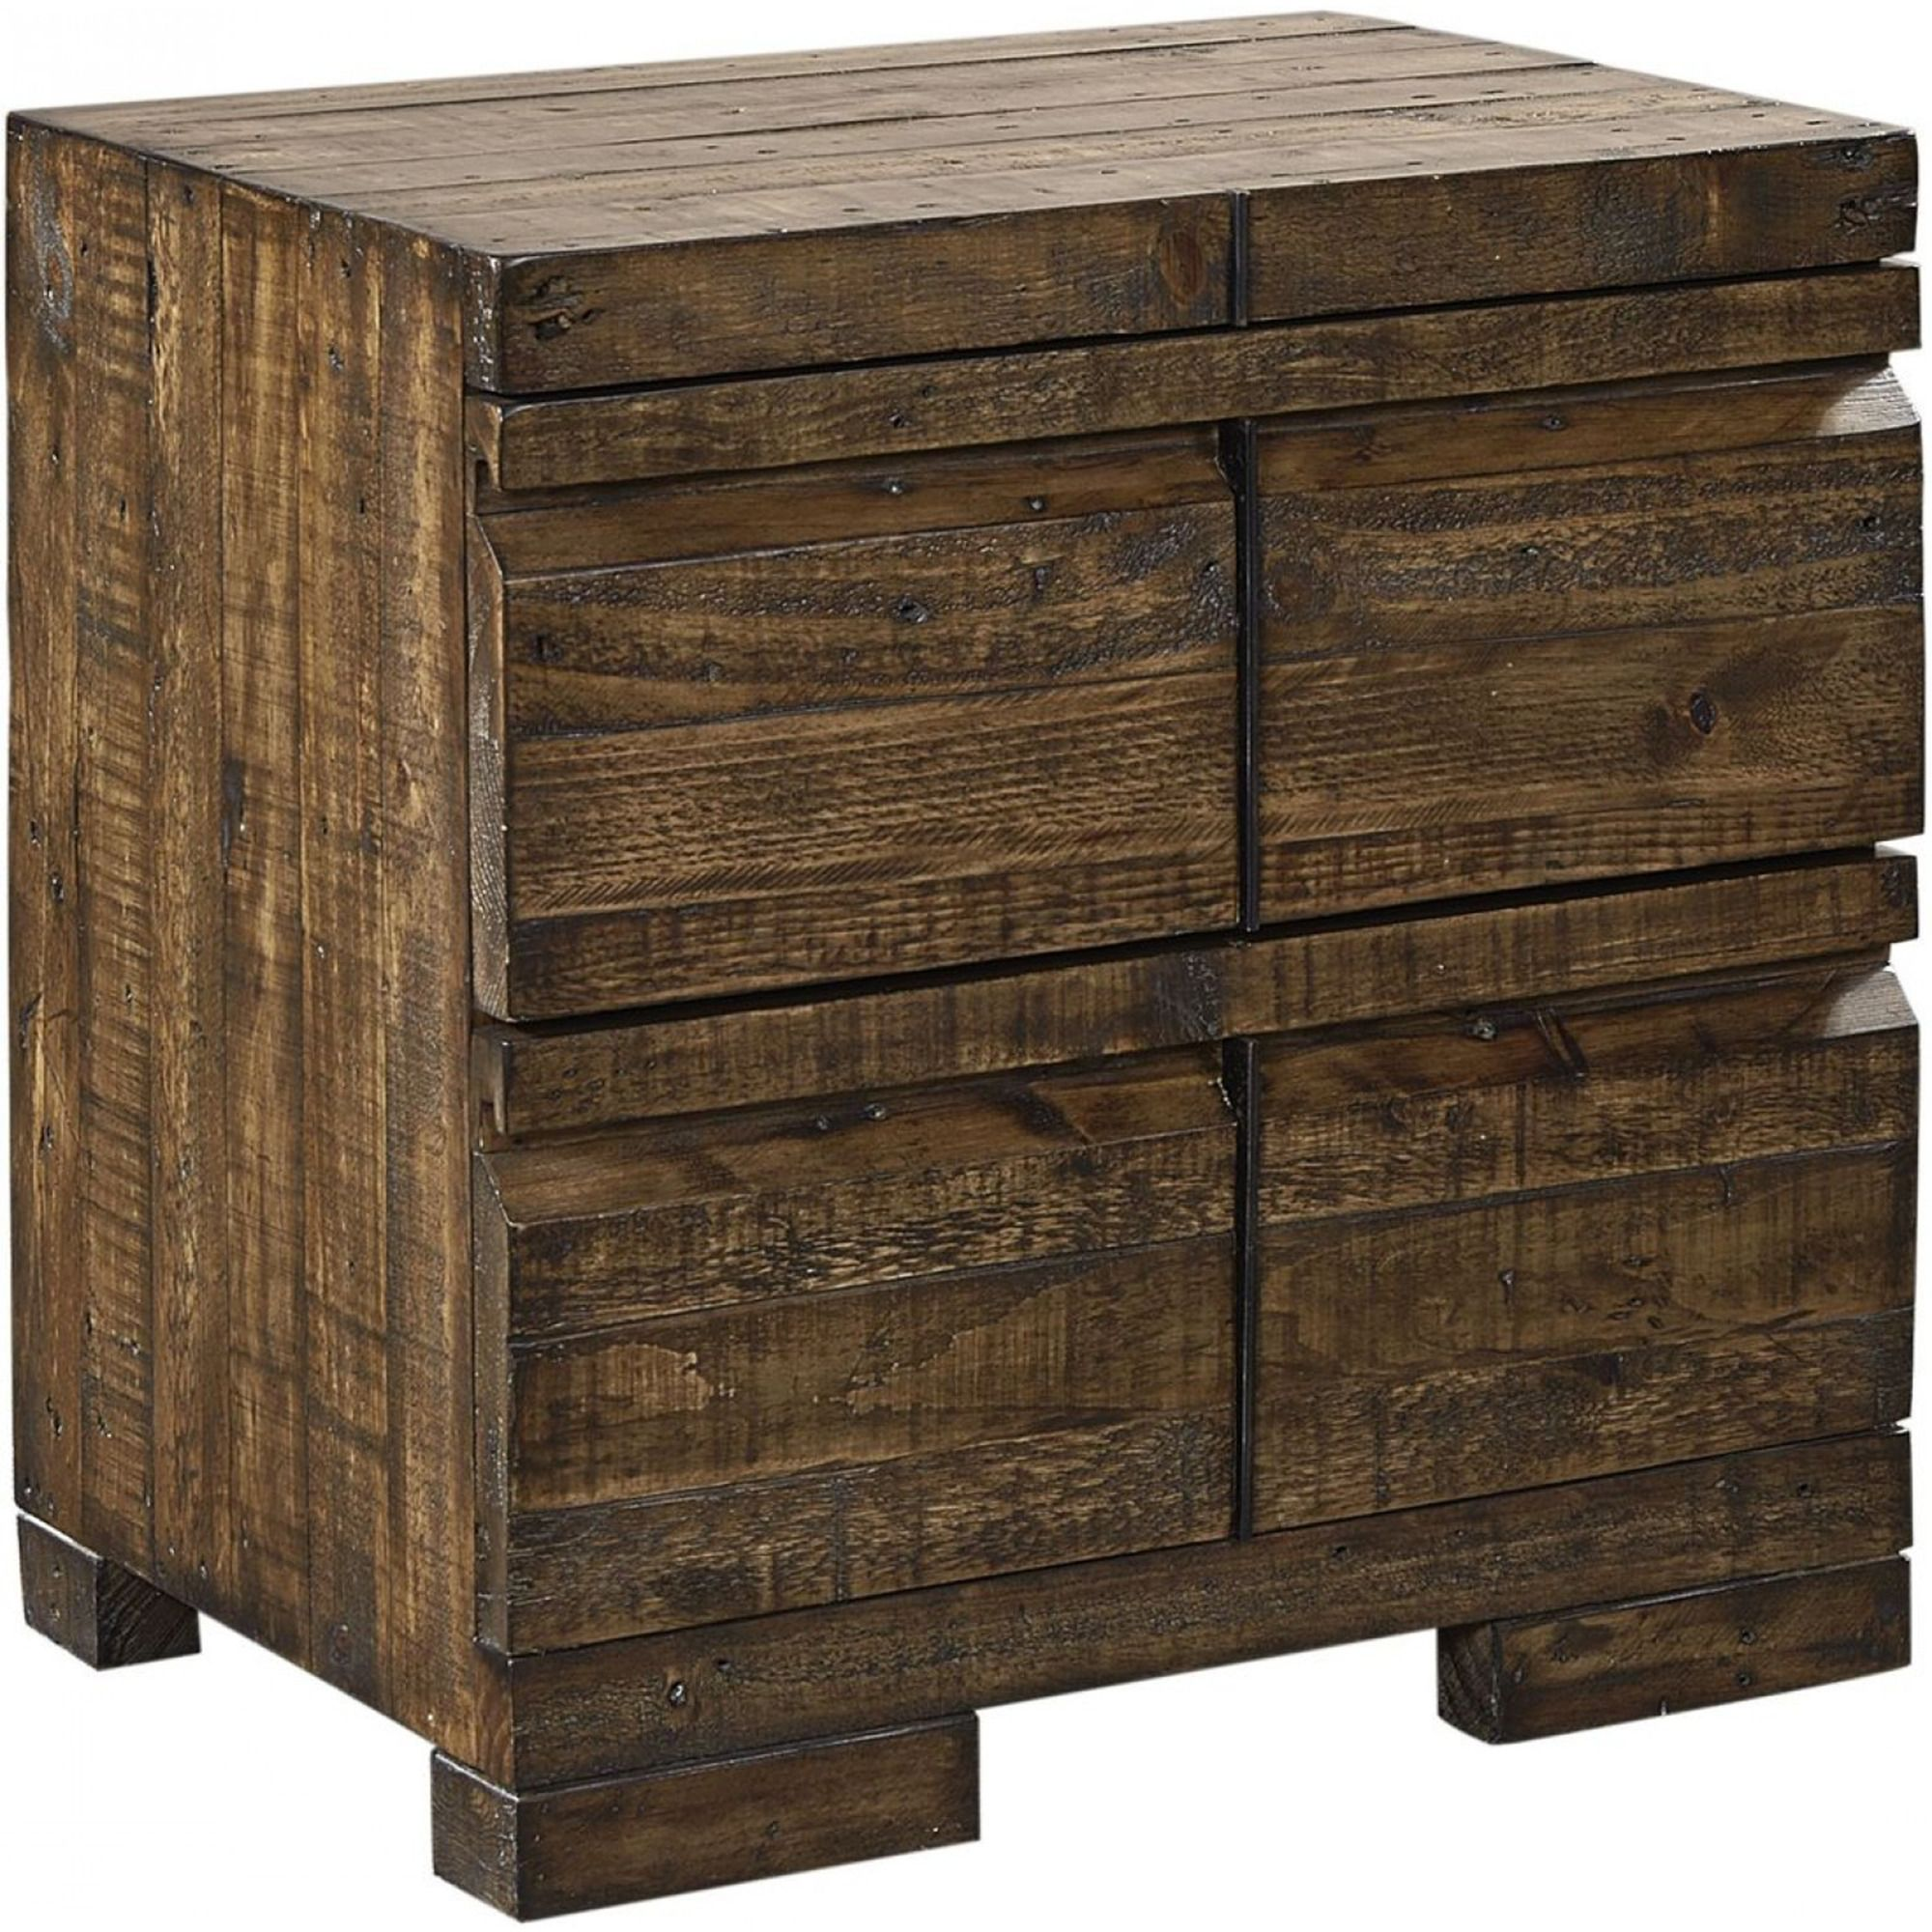 frame jolly rustic style sets cupboard cedar wood sb cabin nightstand couch click frames page mall in and made log set dsc new luxury creek custom bedding by timber built magnificent silver nightstands dressers lovable furniture bedroom aspen